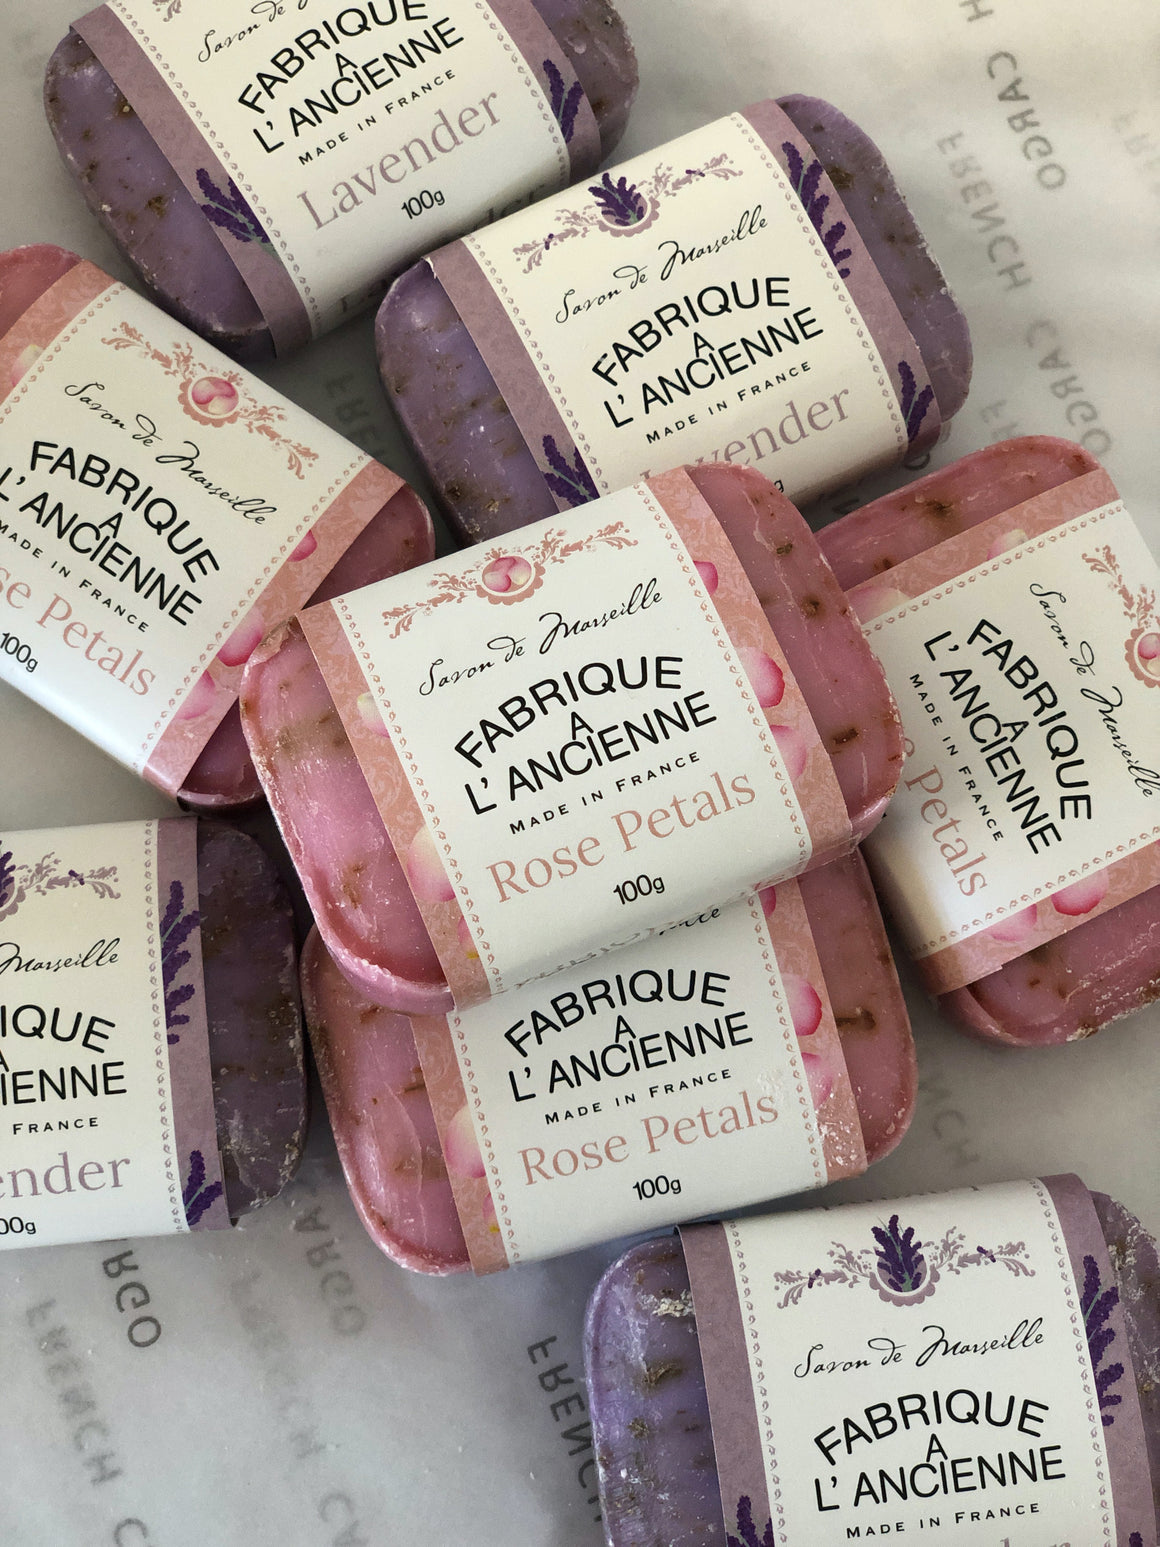 Savon de Marseille French Soap Bar by Fabrique A L'Ancienne - Lavender or Rose Petals